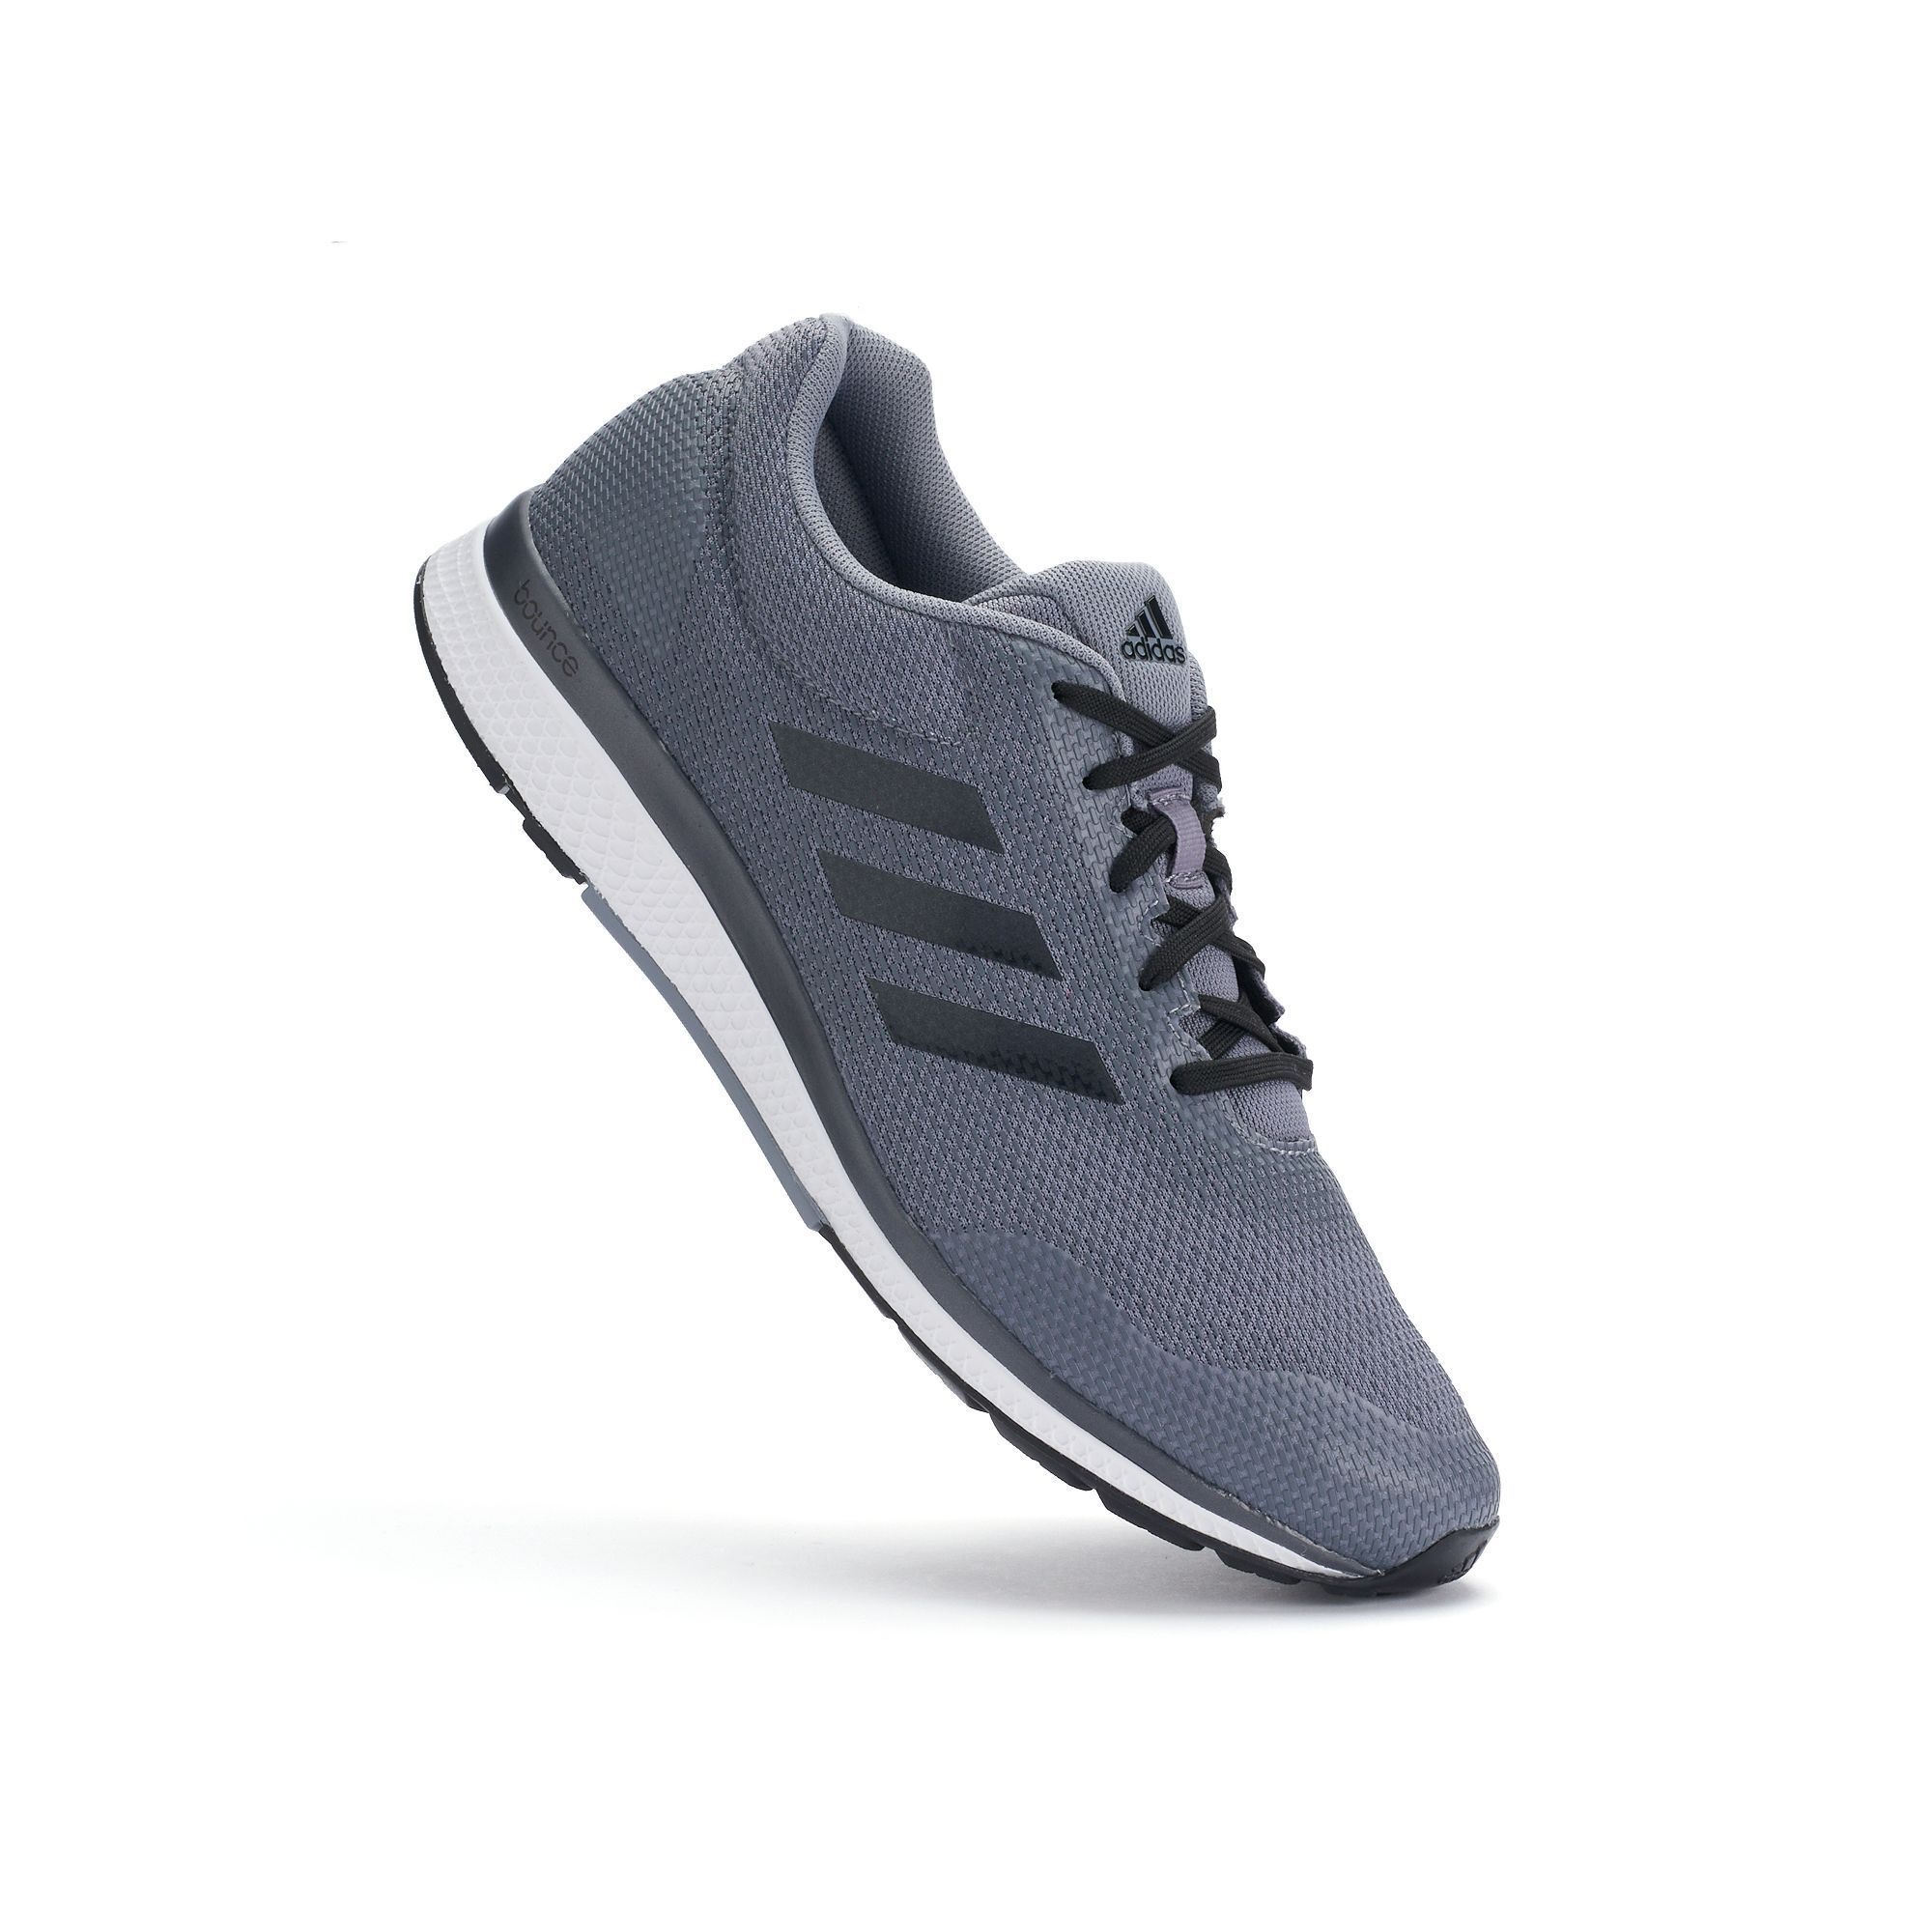 Adidas Blue Athletic Shoes Running Bounce Sole Size 8